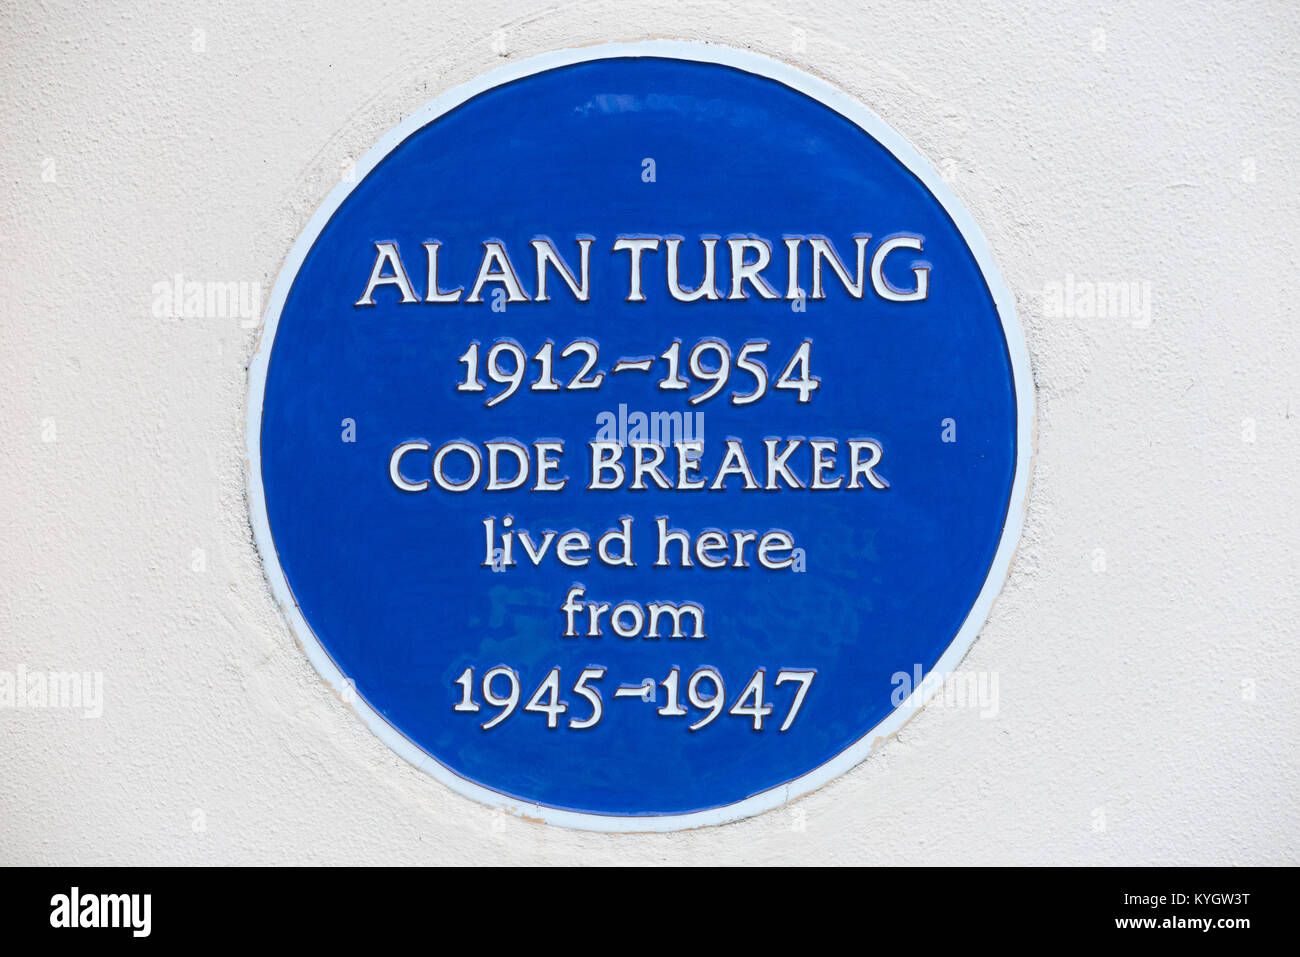 Blue plaque on former home of / house once lived in by Alan Turing, the famous mathematician & enigma code breaker. - Stock Image